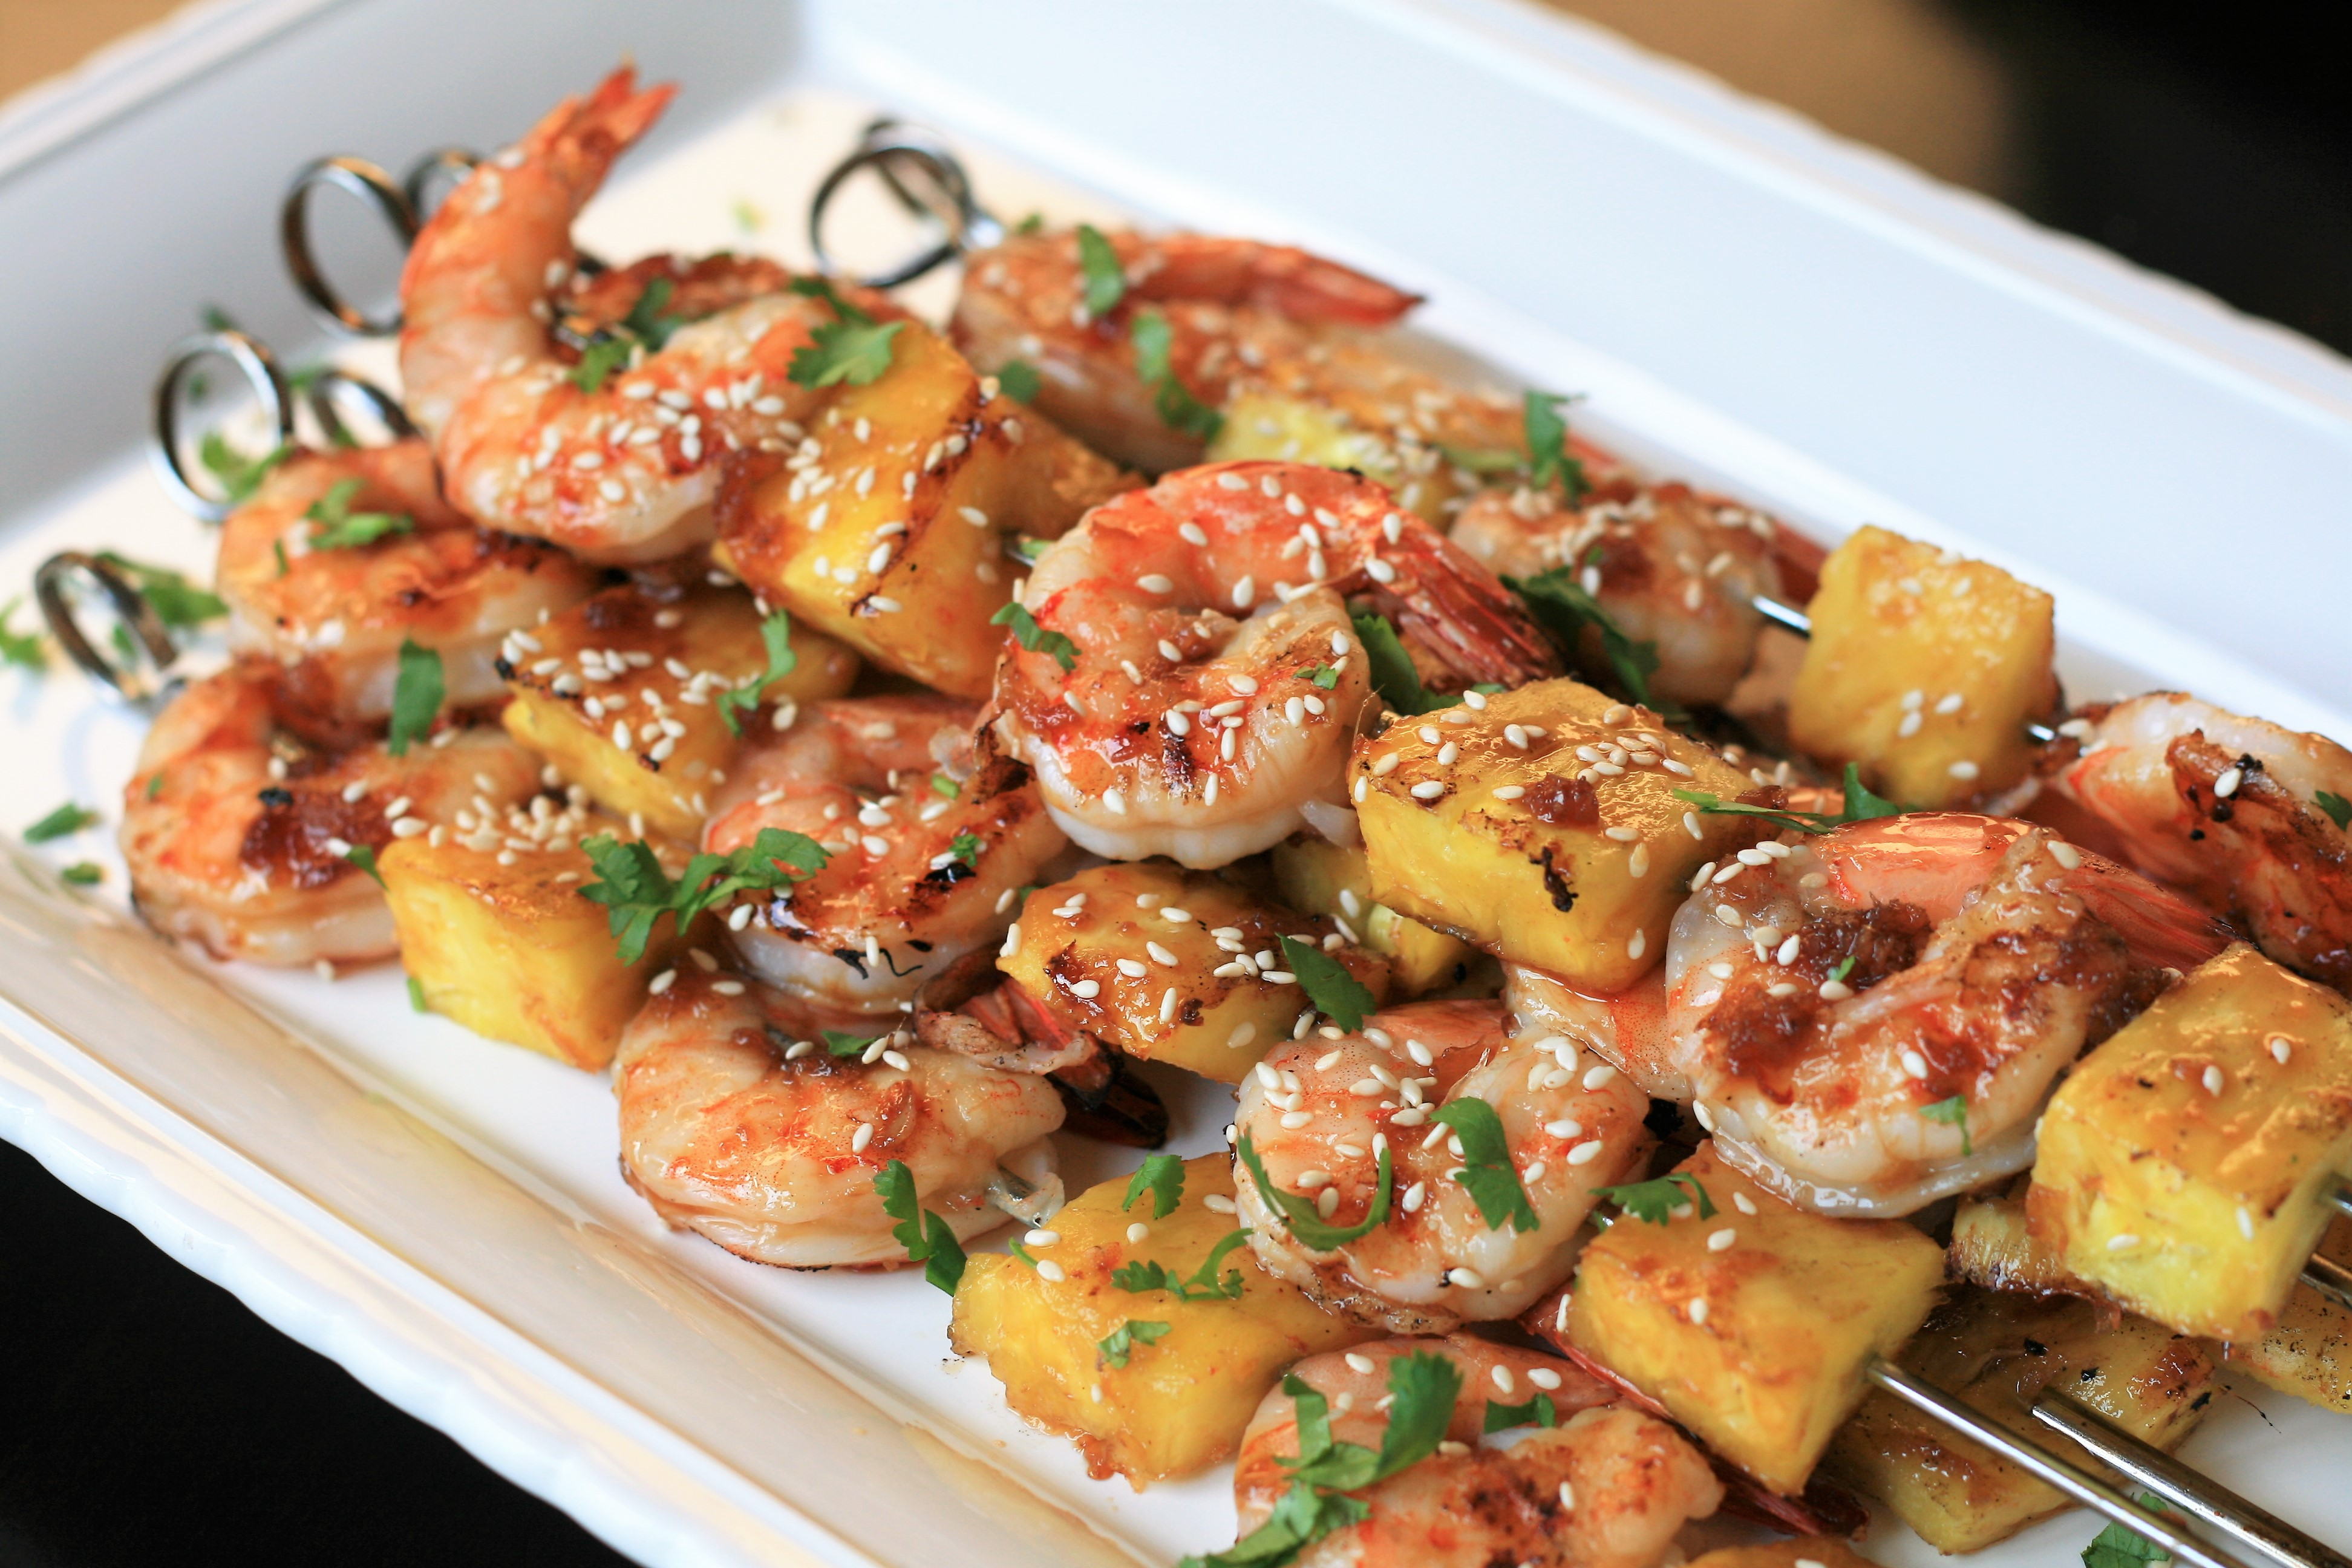 Grilled Teriyaki Shrimp and Pineapple Skewers